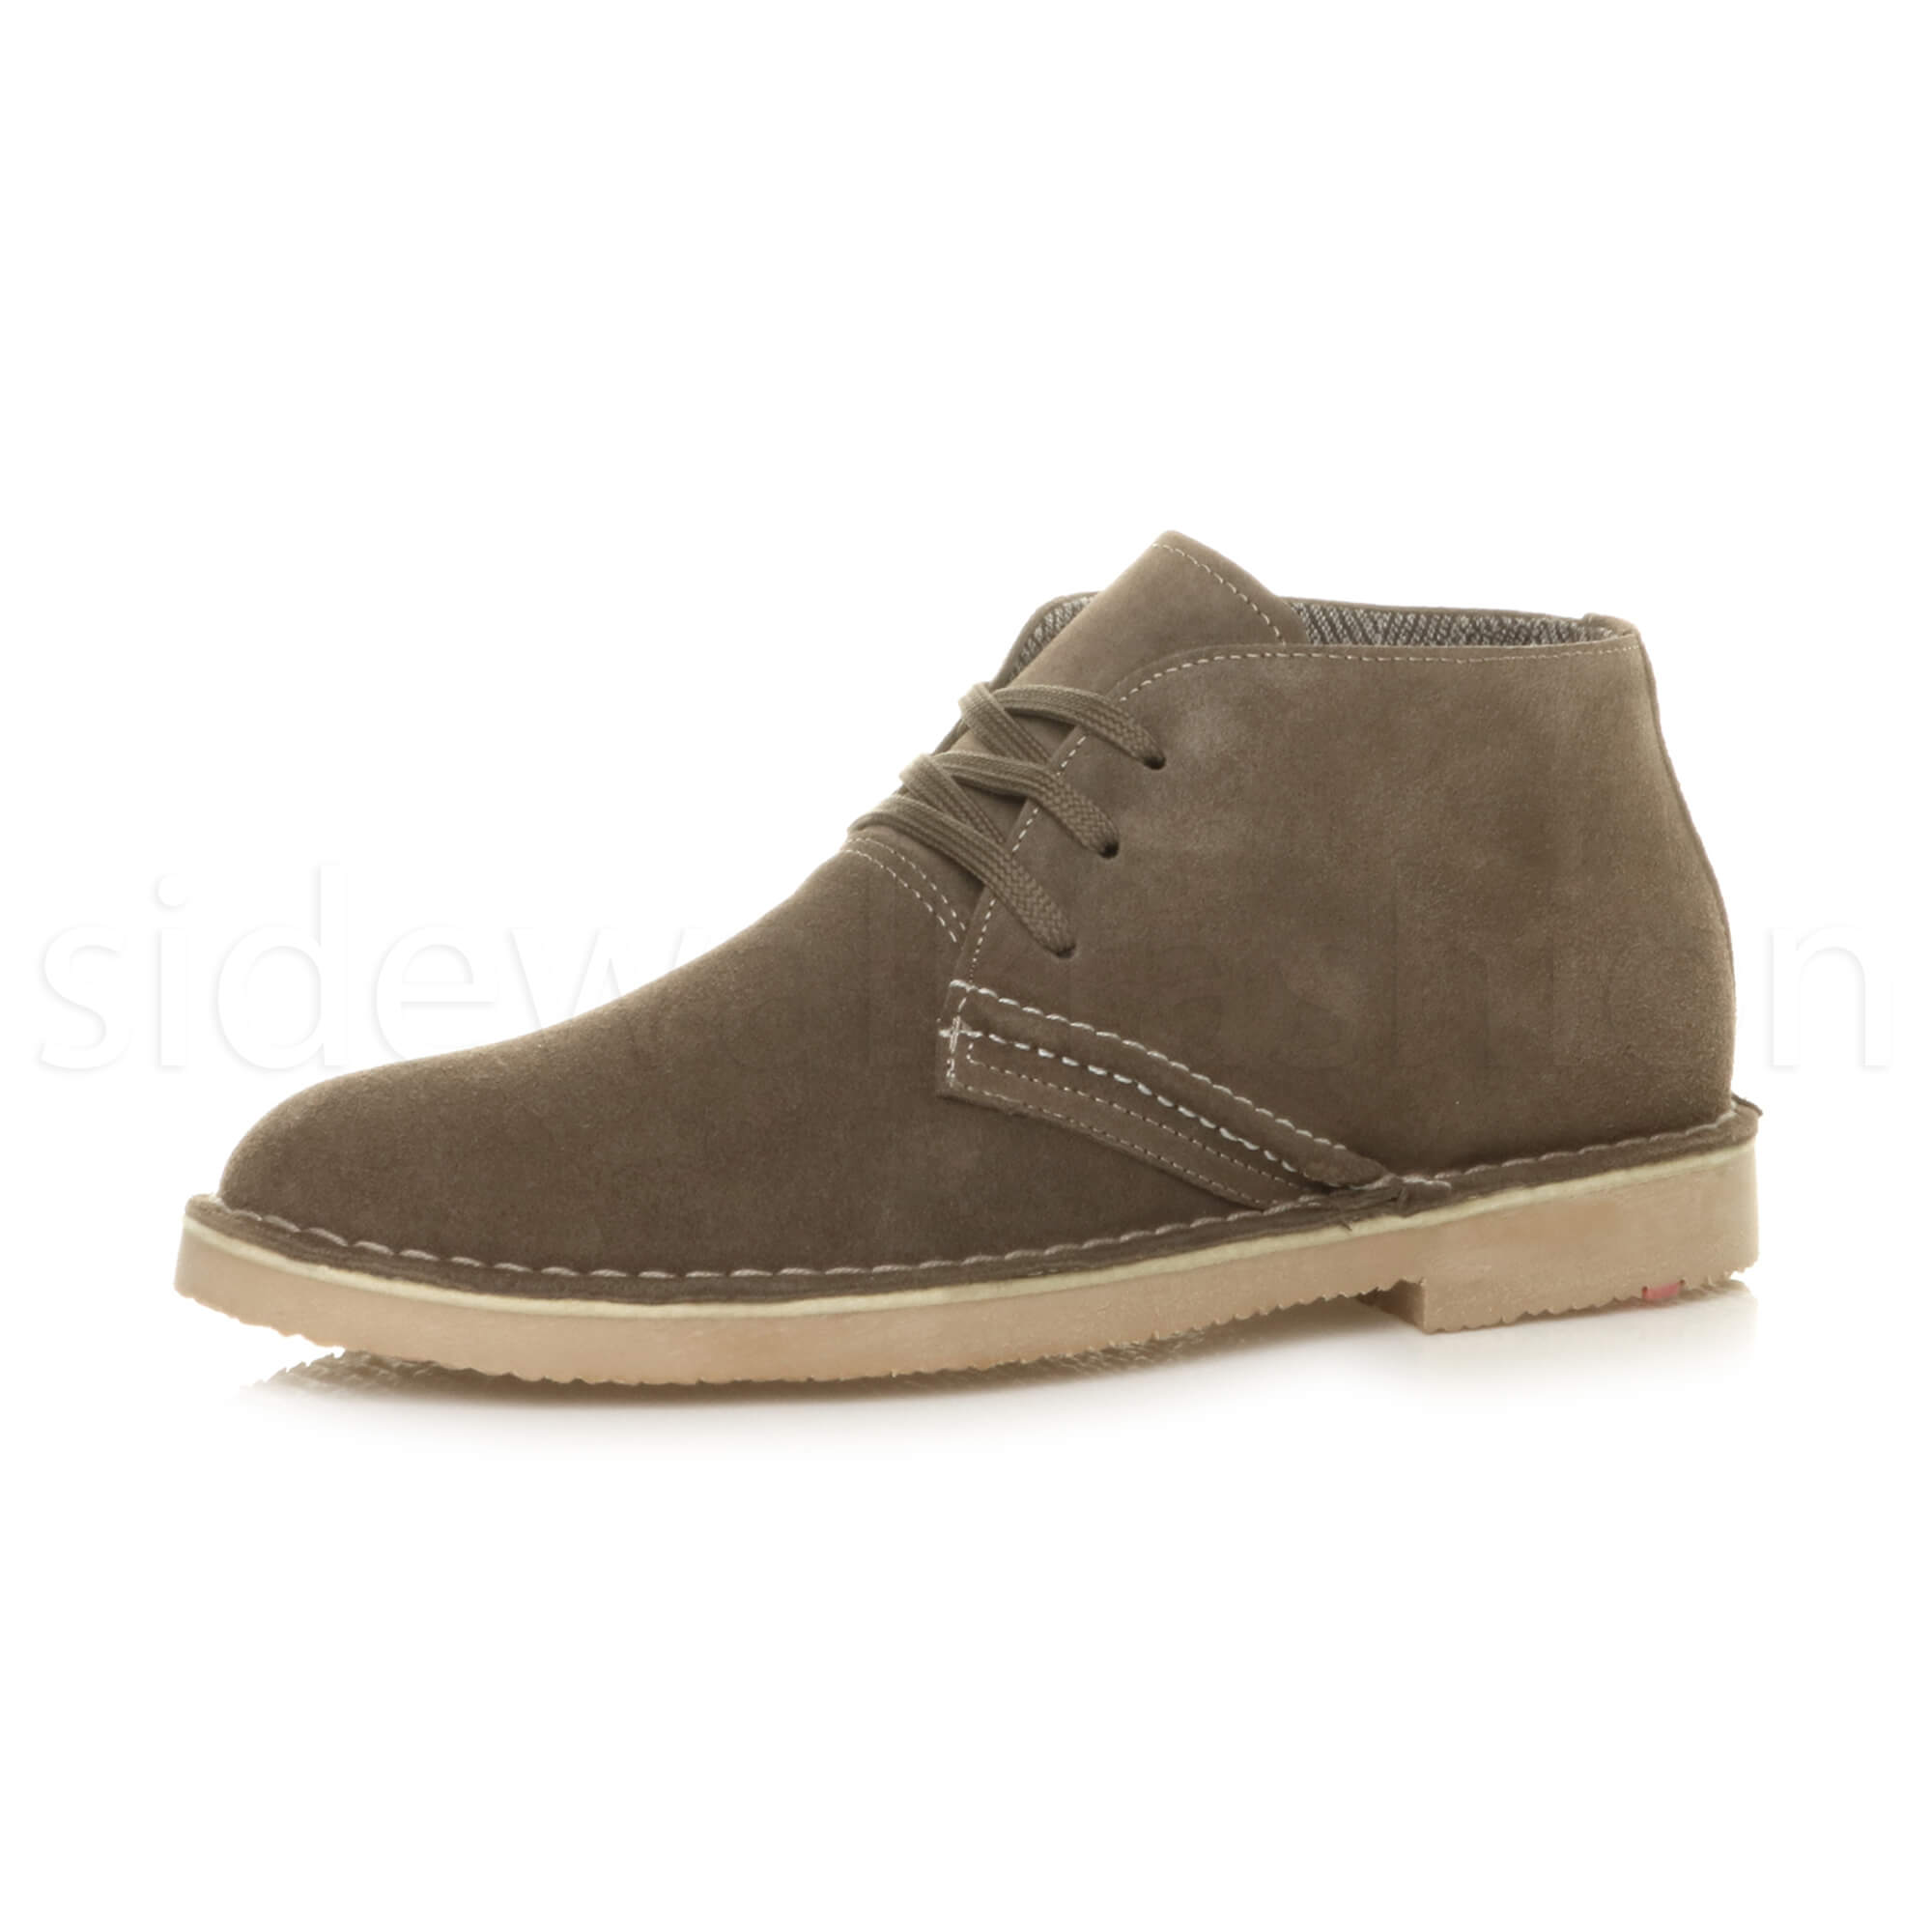 mens lace up classic desert suede leather casual ankle flat boots shoes size ebay. Black Bedroom Furniture Sets. Home Design Ideas